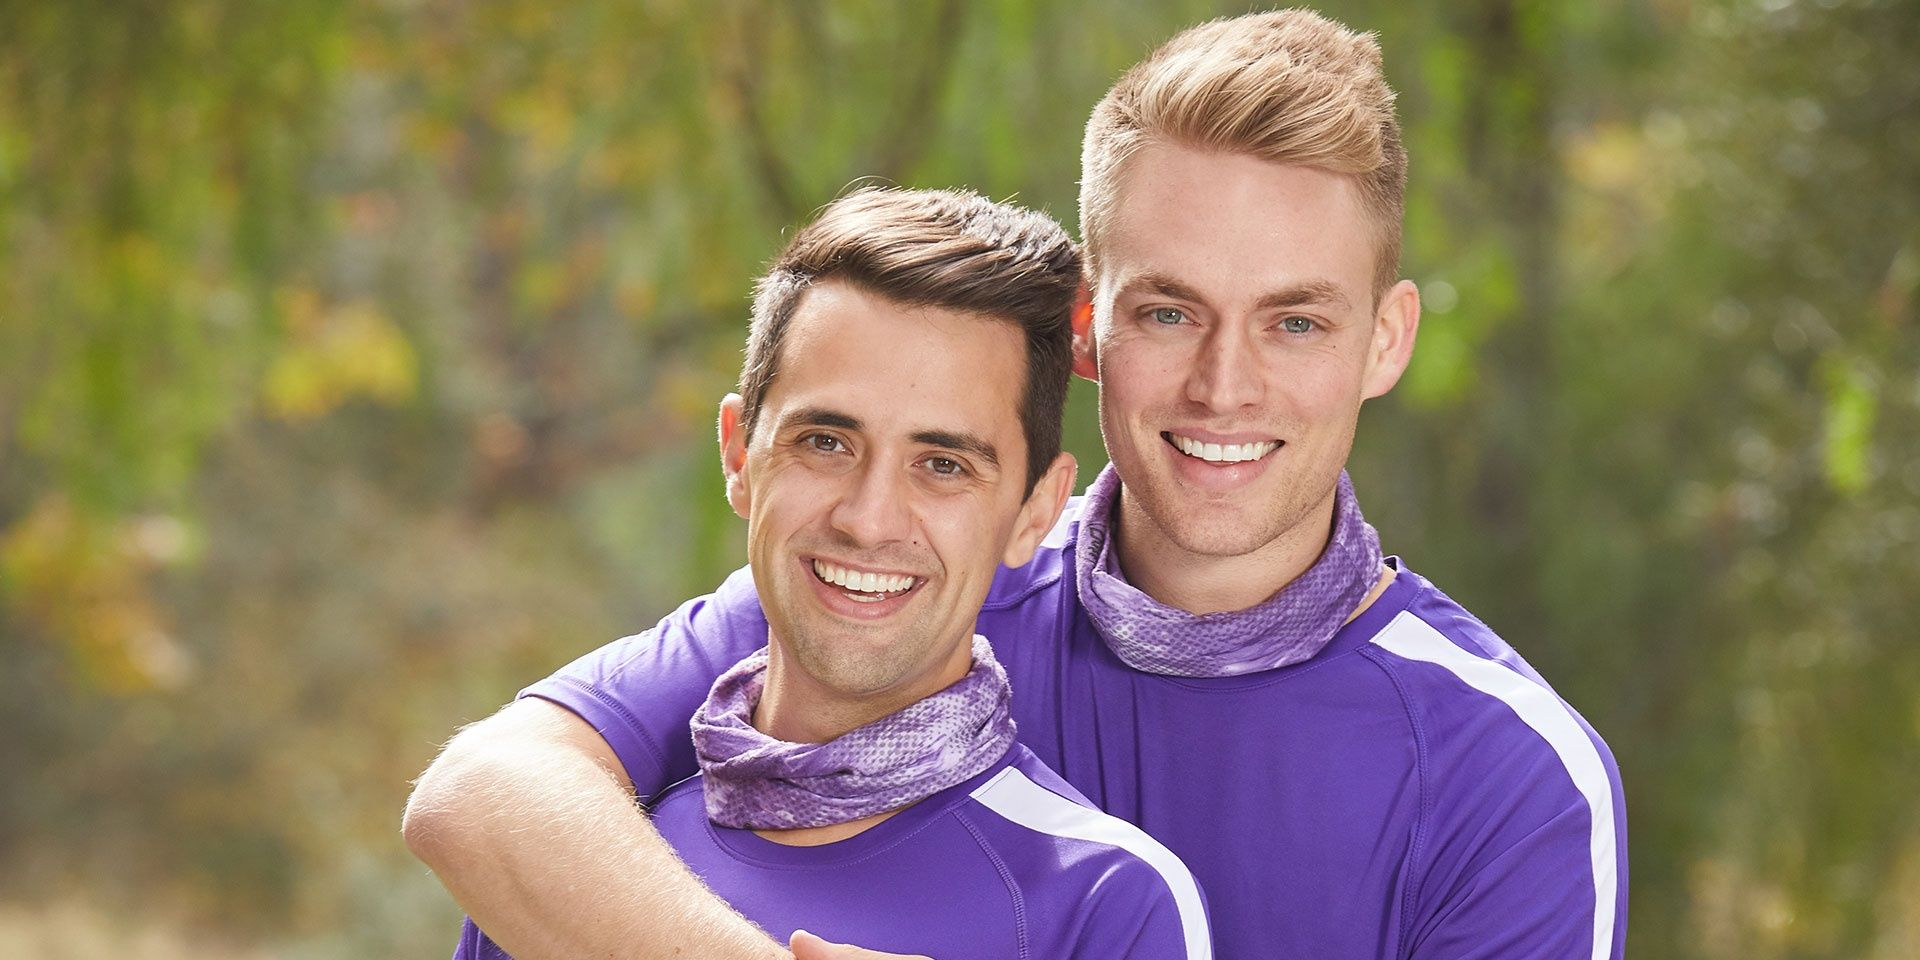 Will-and-James-on-The-Amazing-Race-32.jpg